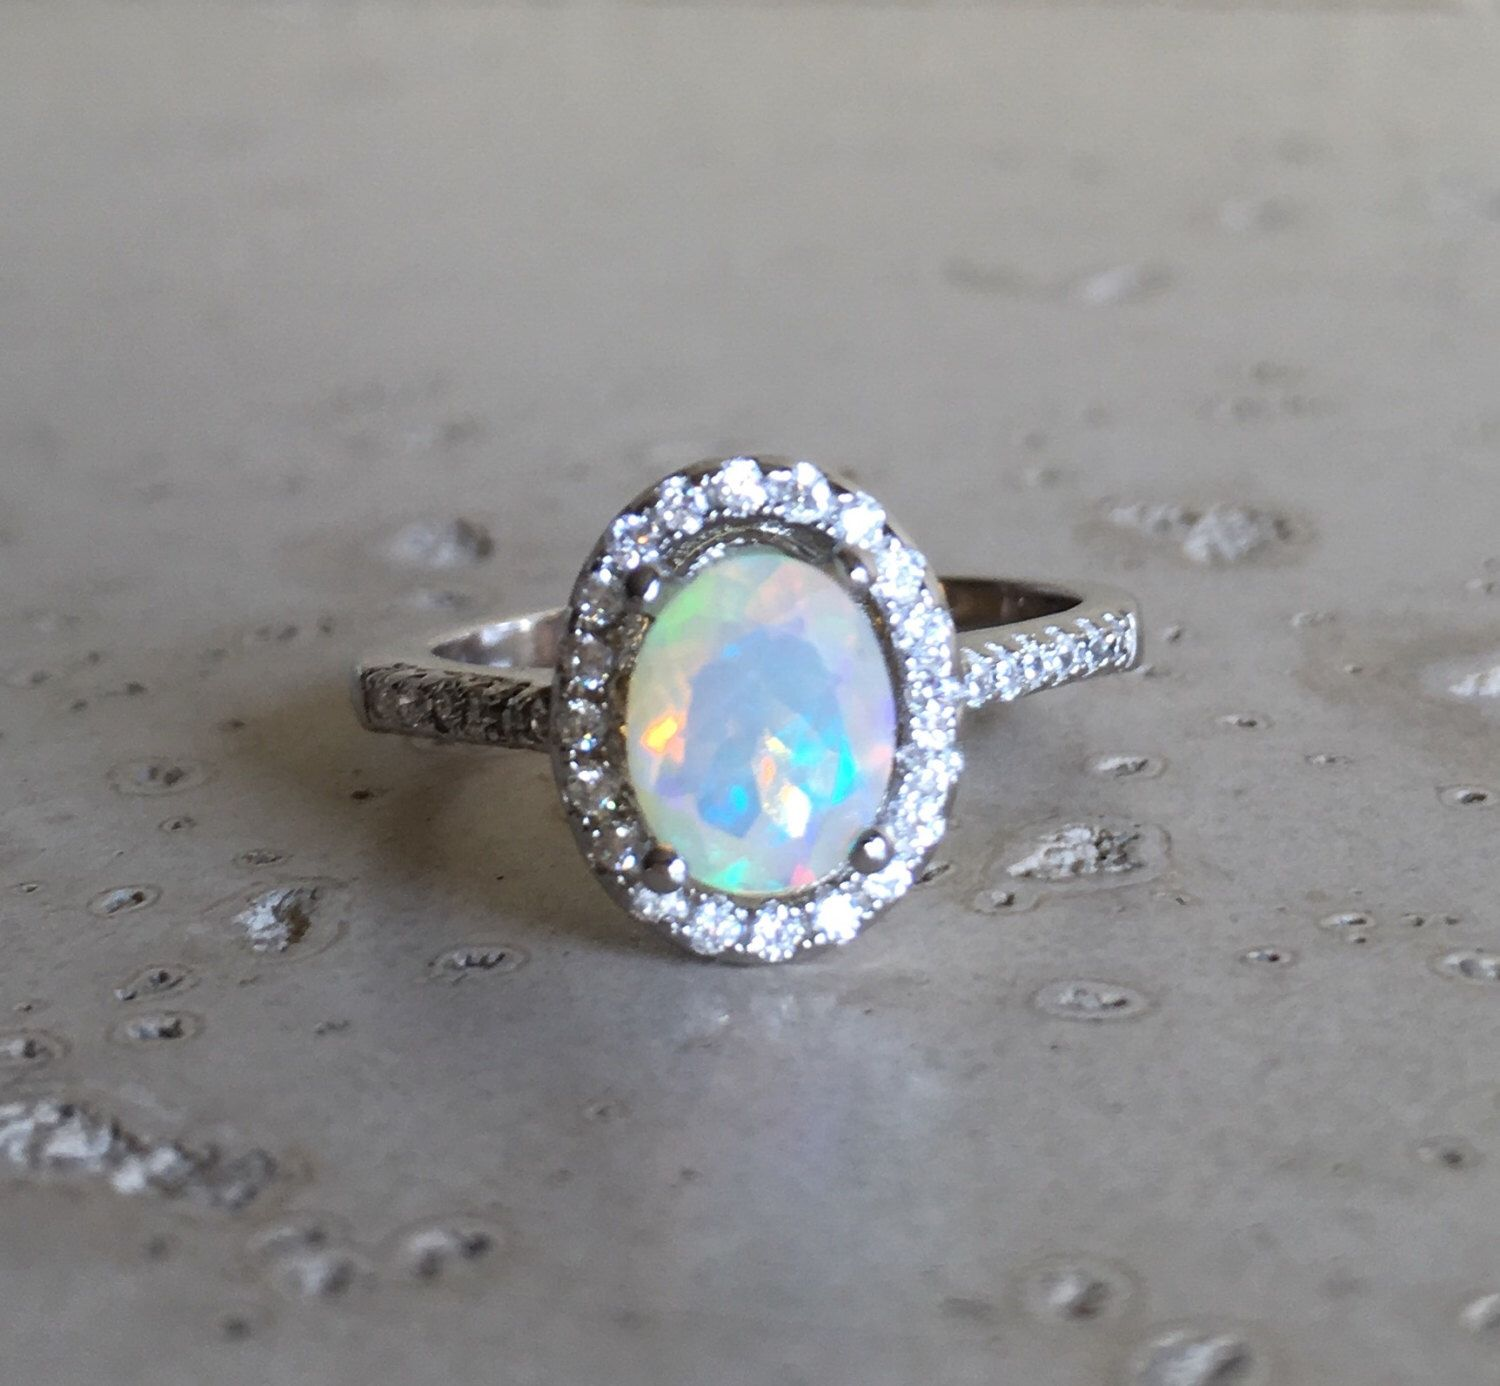 cut ring accents diamonds pear a rings diamond solitaire opal products with october wedding birthstone once upon